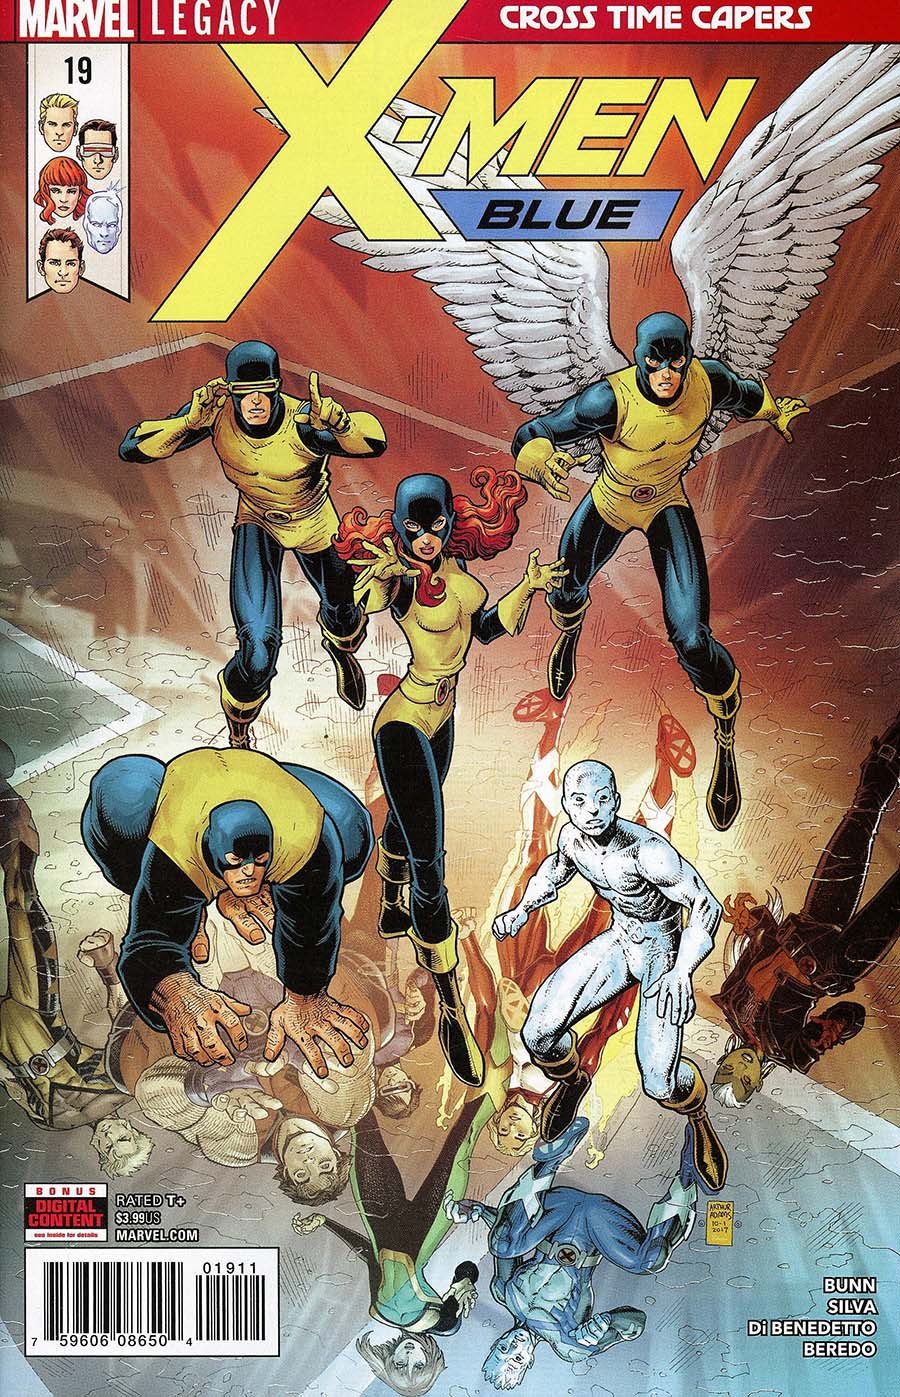 X-Men Blue #19 (Marvel Legacy Tie-In)